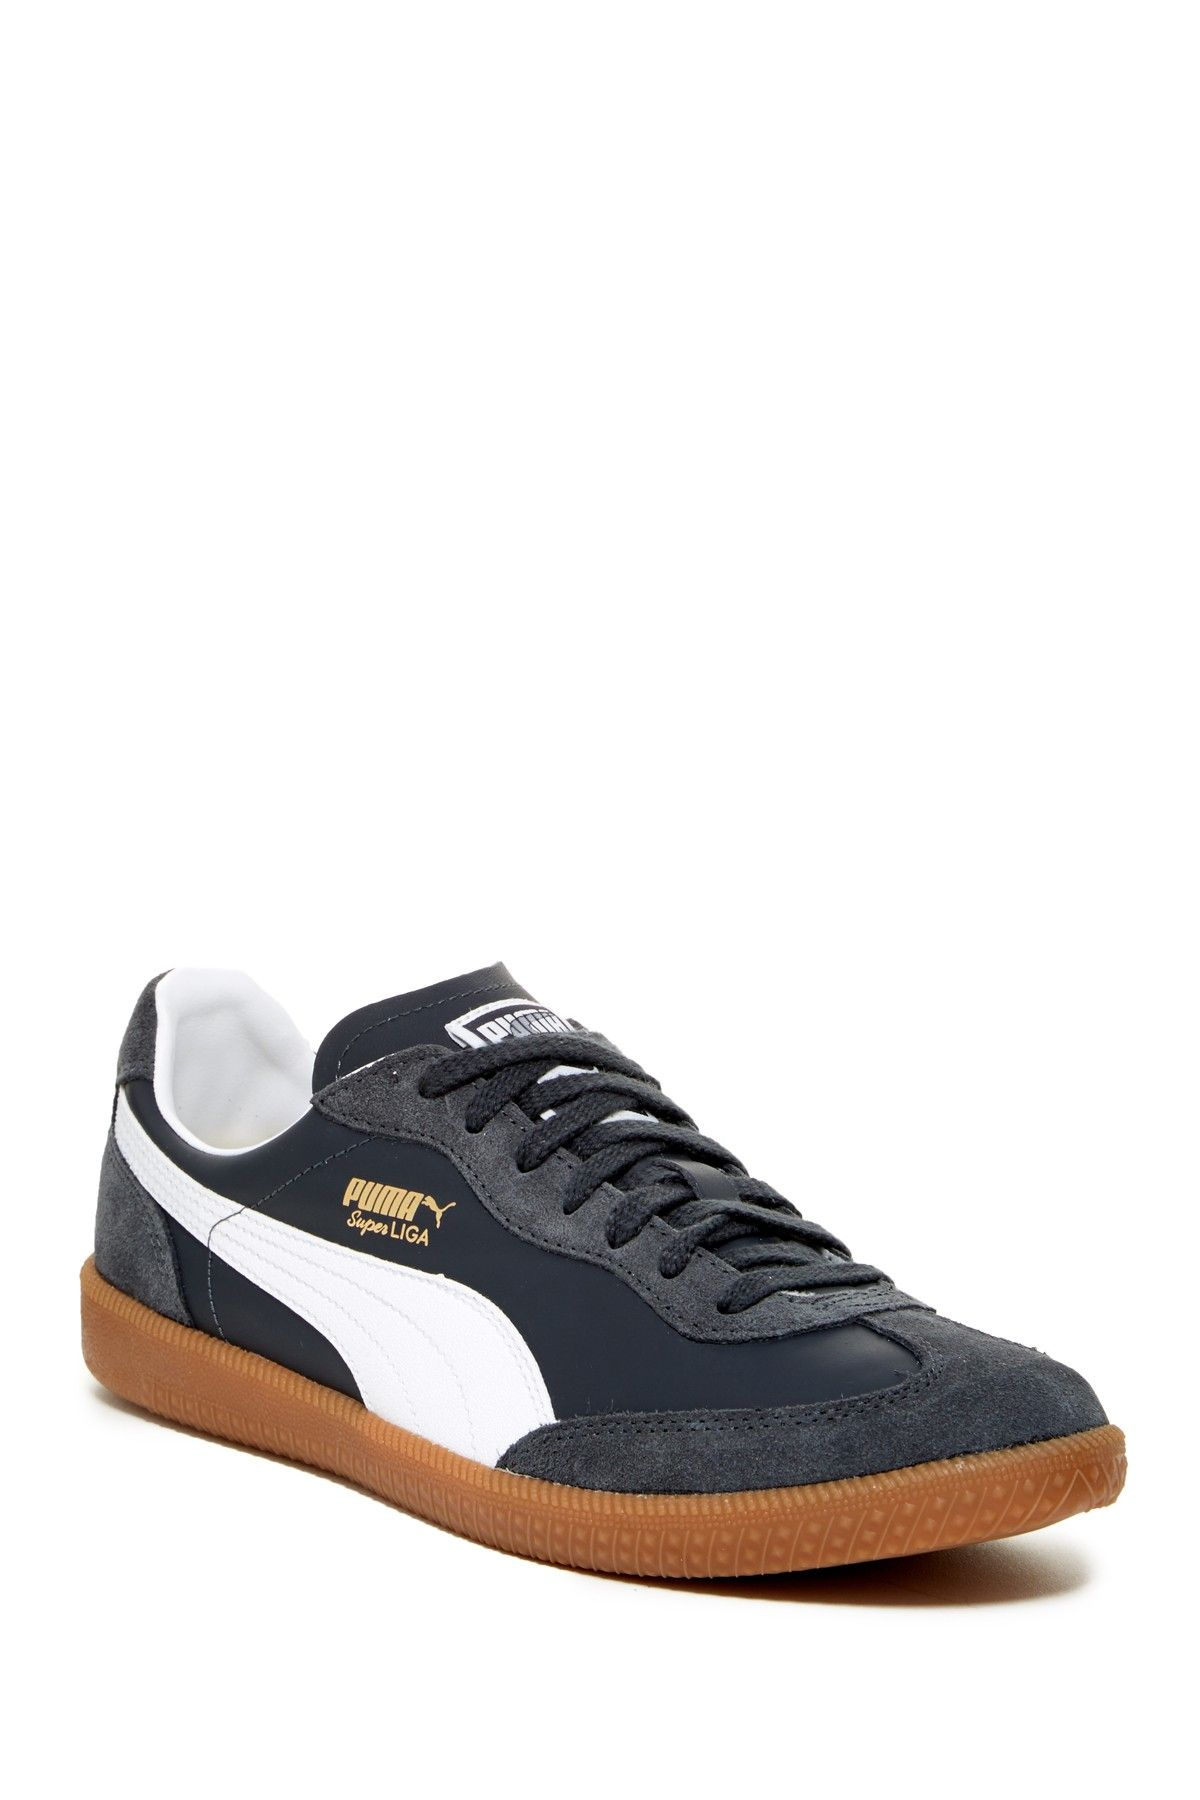 3ac4e8bf94cb PUMA - Super Liga OG Retro Sneaker at Nordstrom Rack. Free Shipping on  orders over  100.